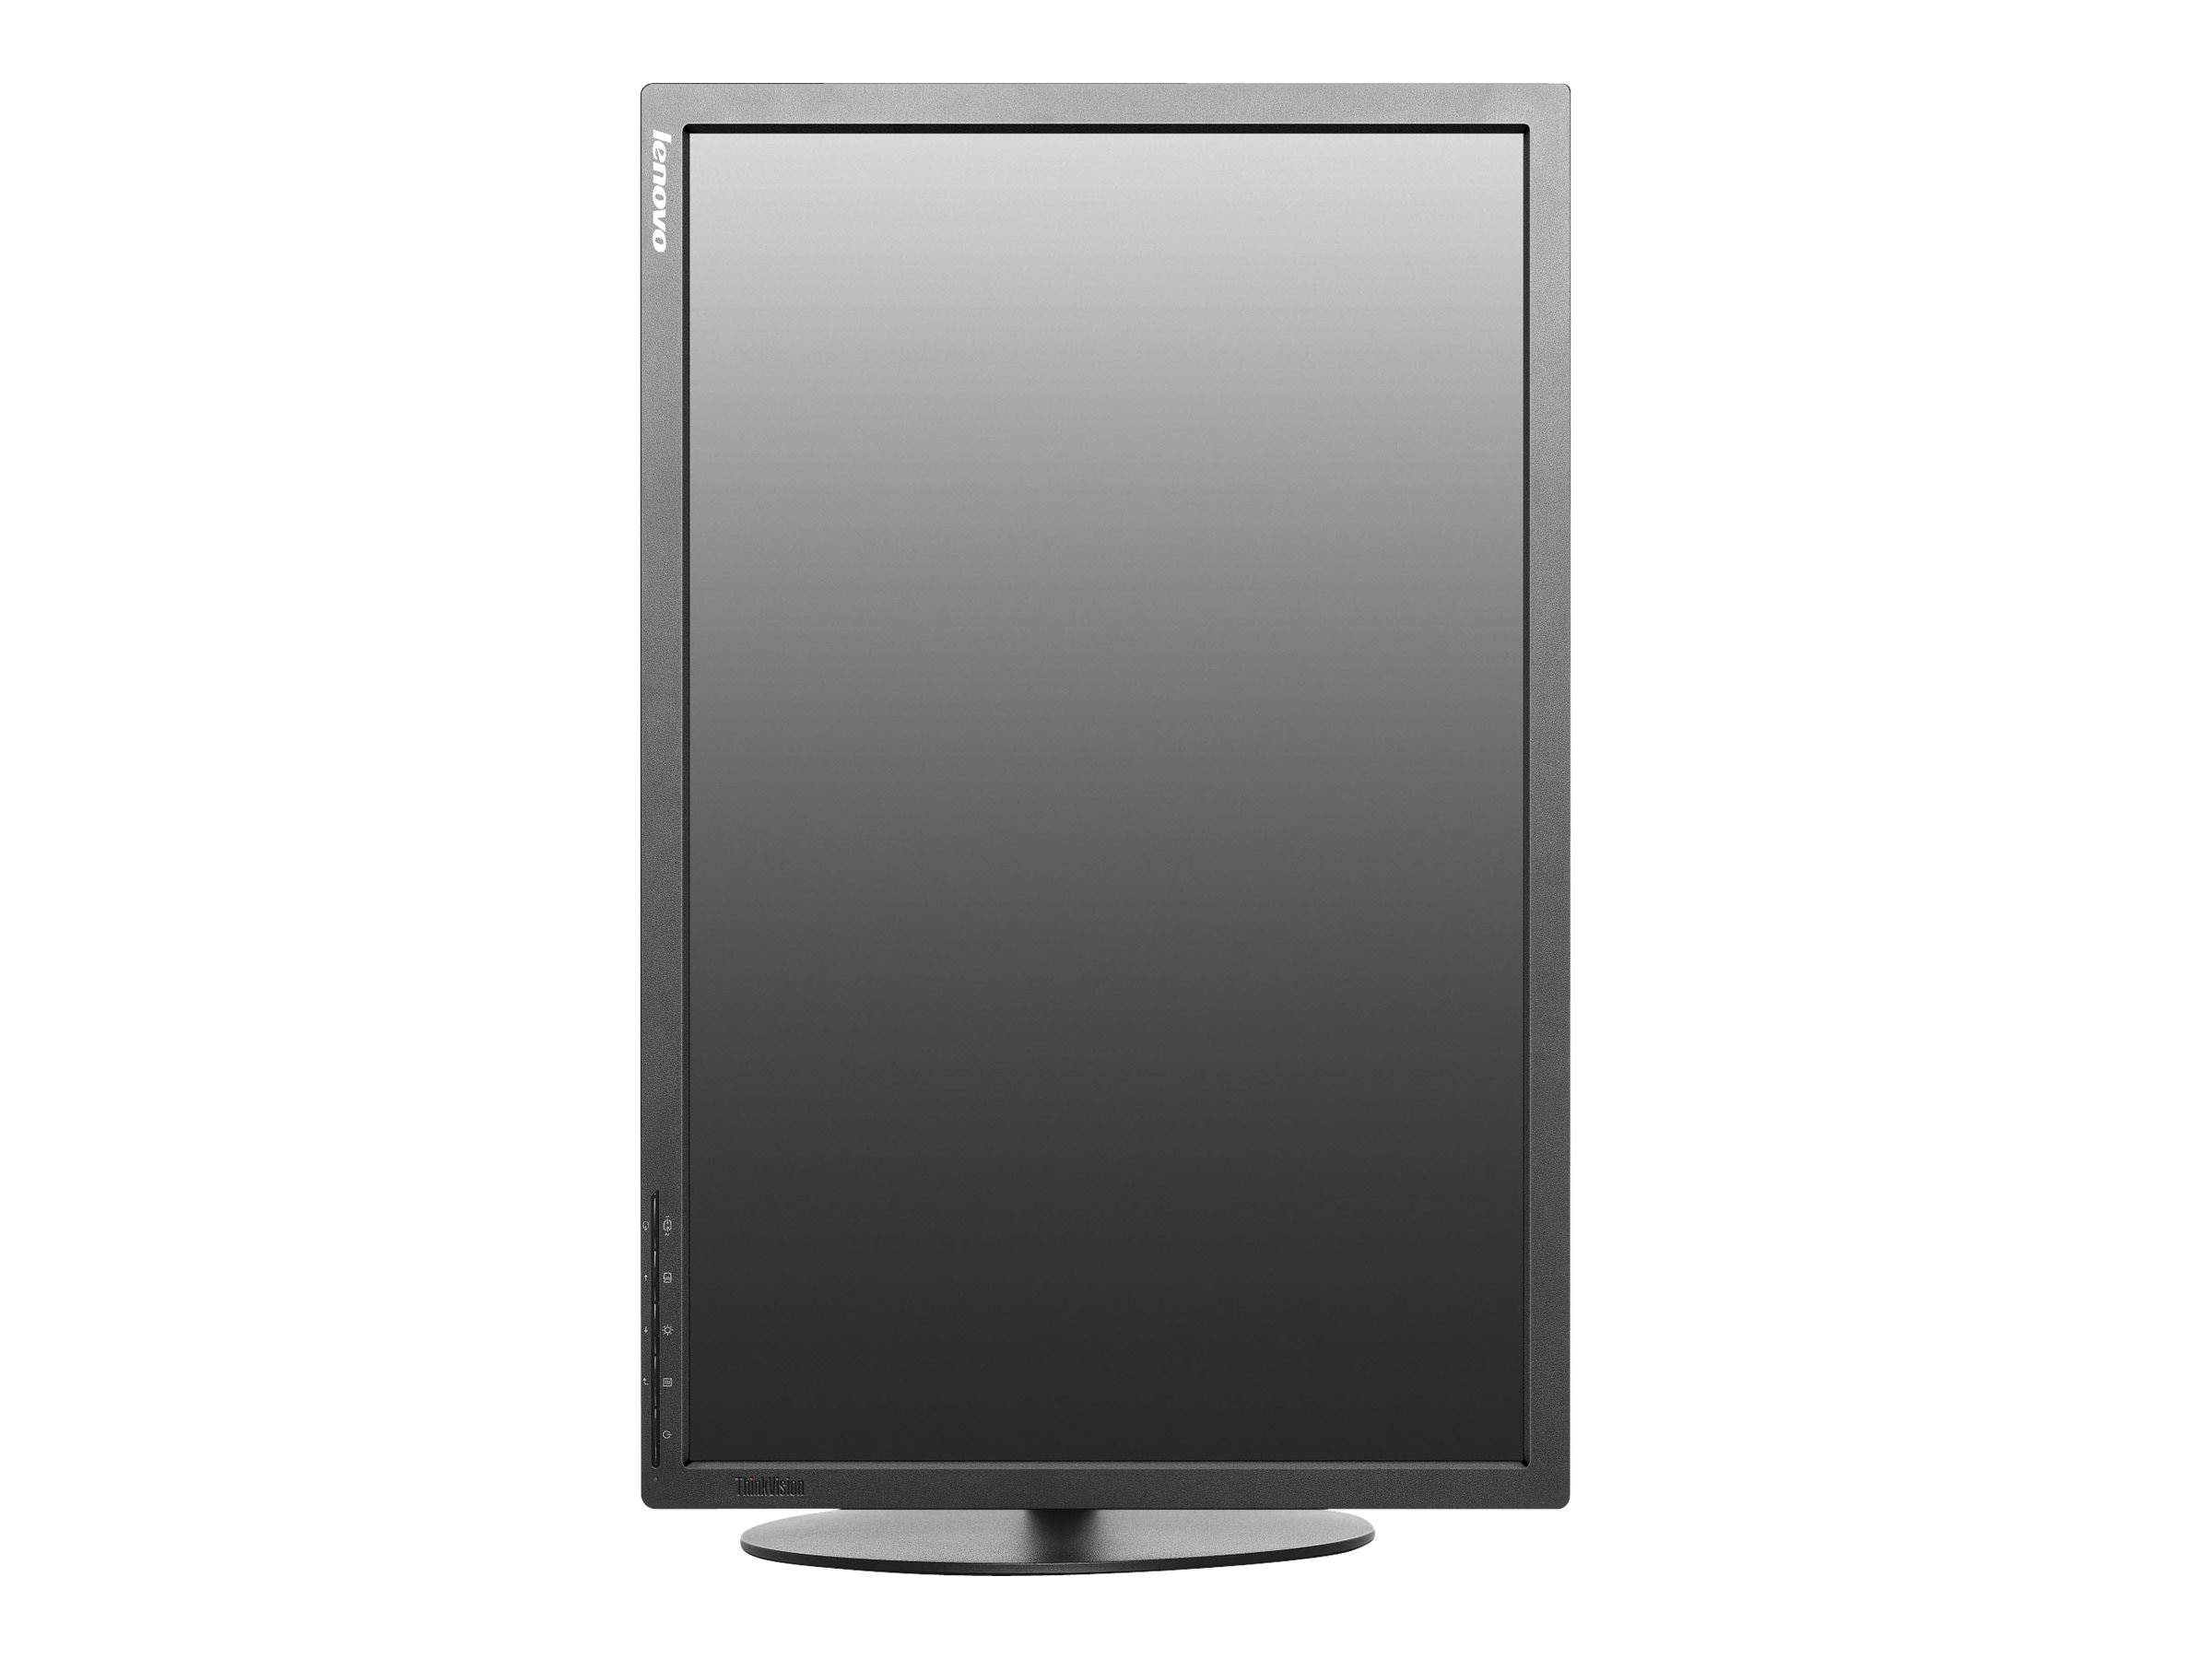 Lenovo 24 T2454p LED-LCD Monitor, Black, 60C9MAR1US